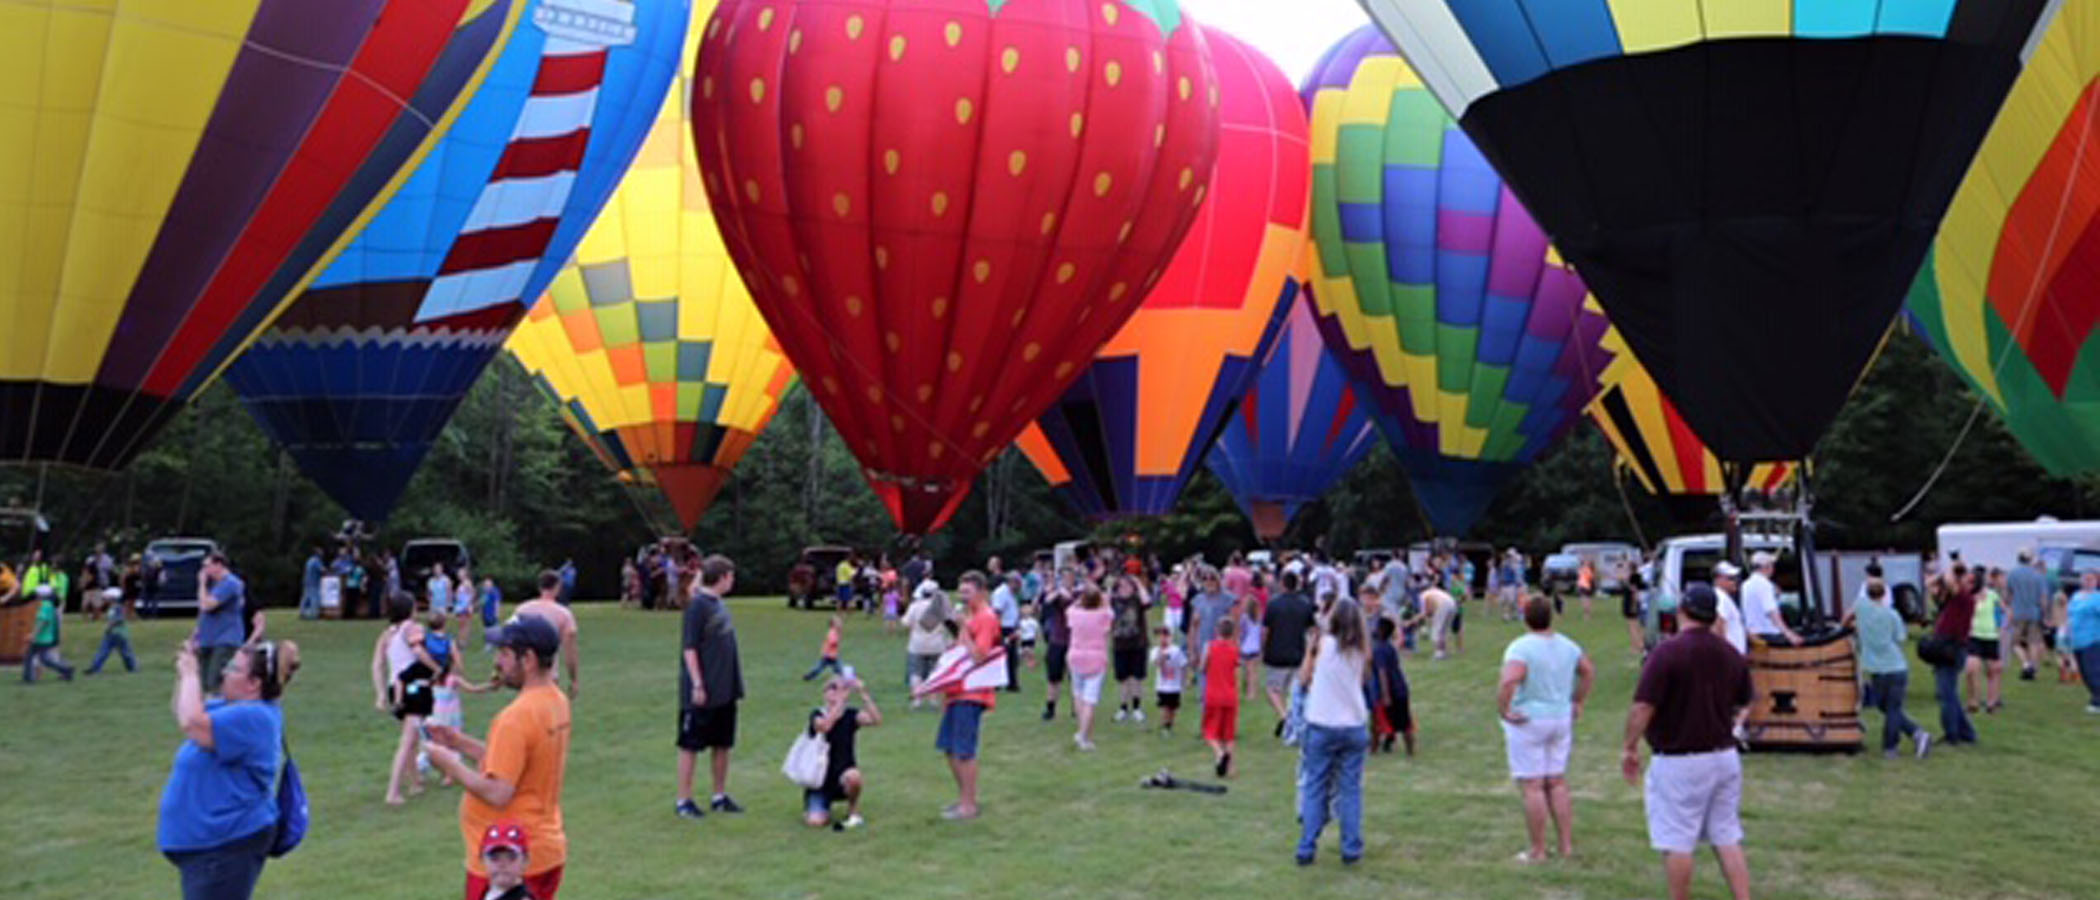 The annual Thurston Classic hot-air balloons in Meadville, Pennsylvania!